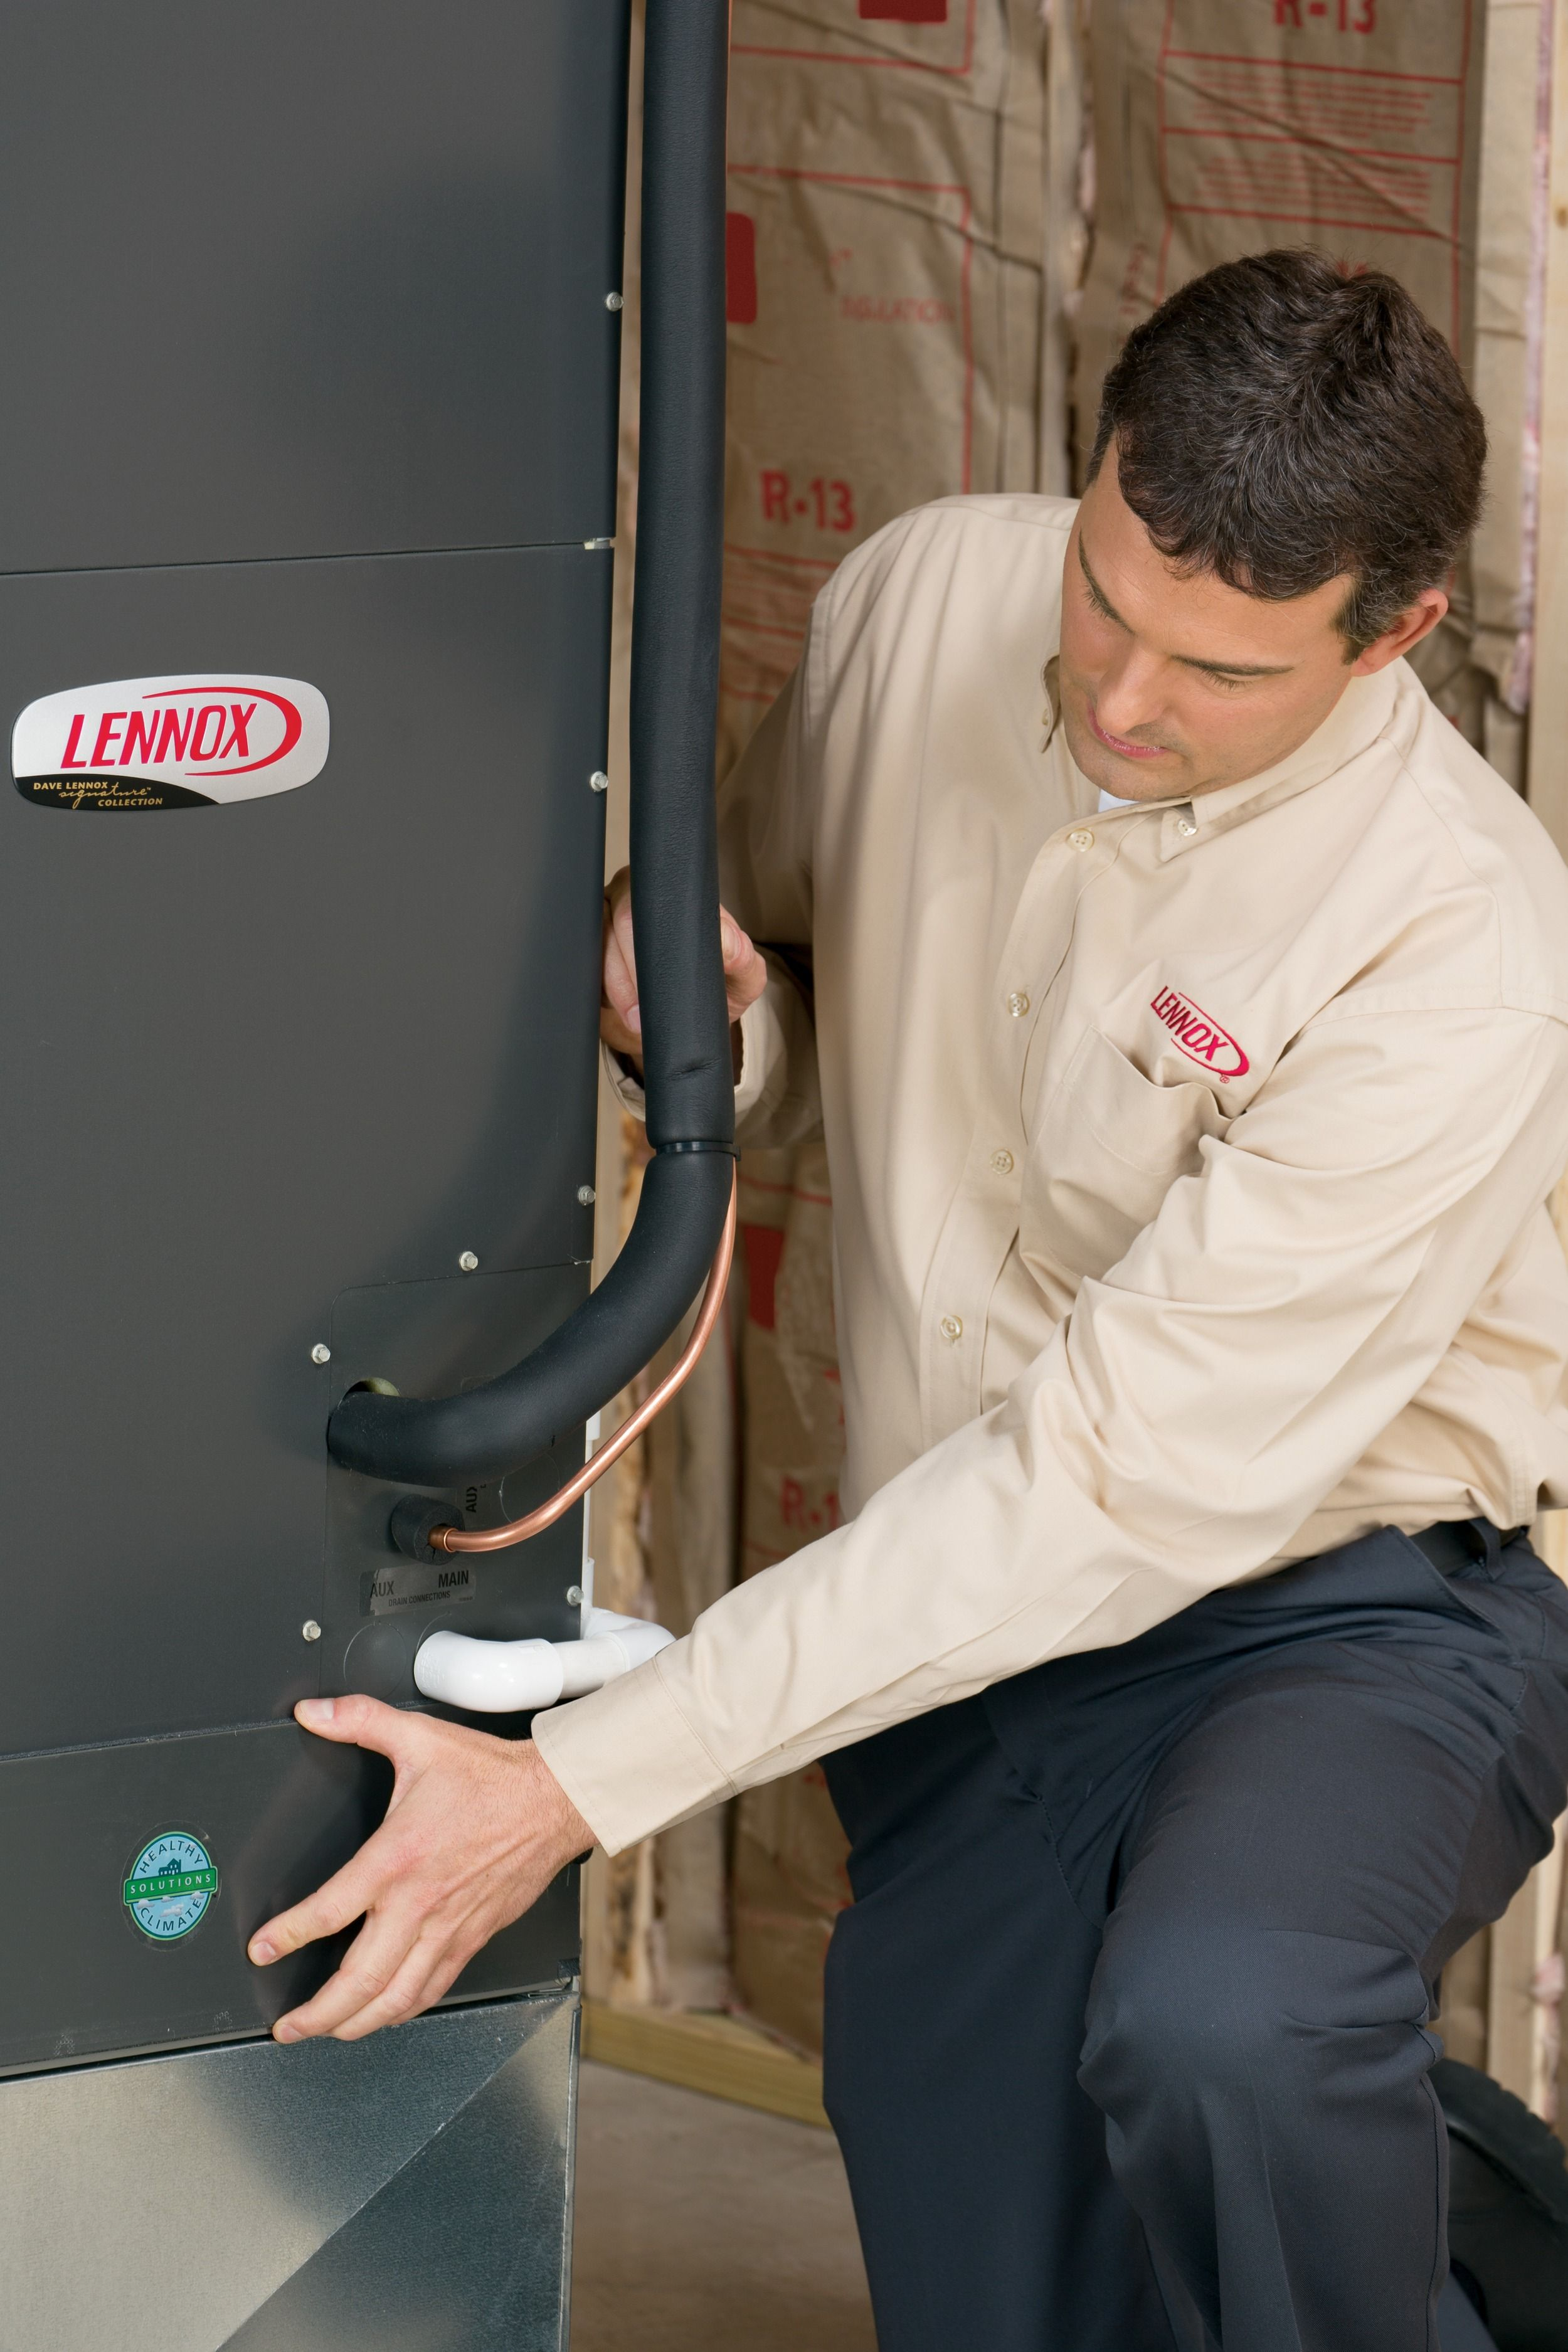 Need emergency repairs done on your furnace? At Four